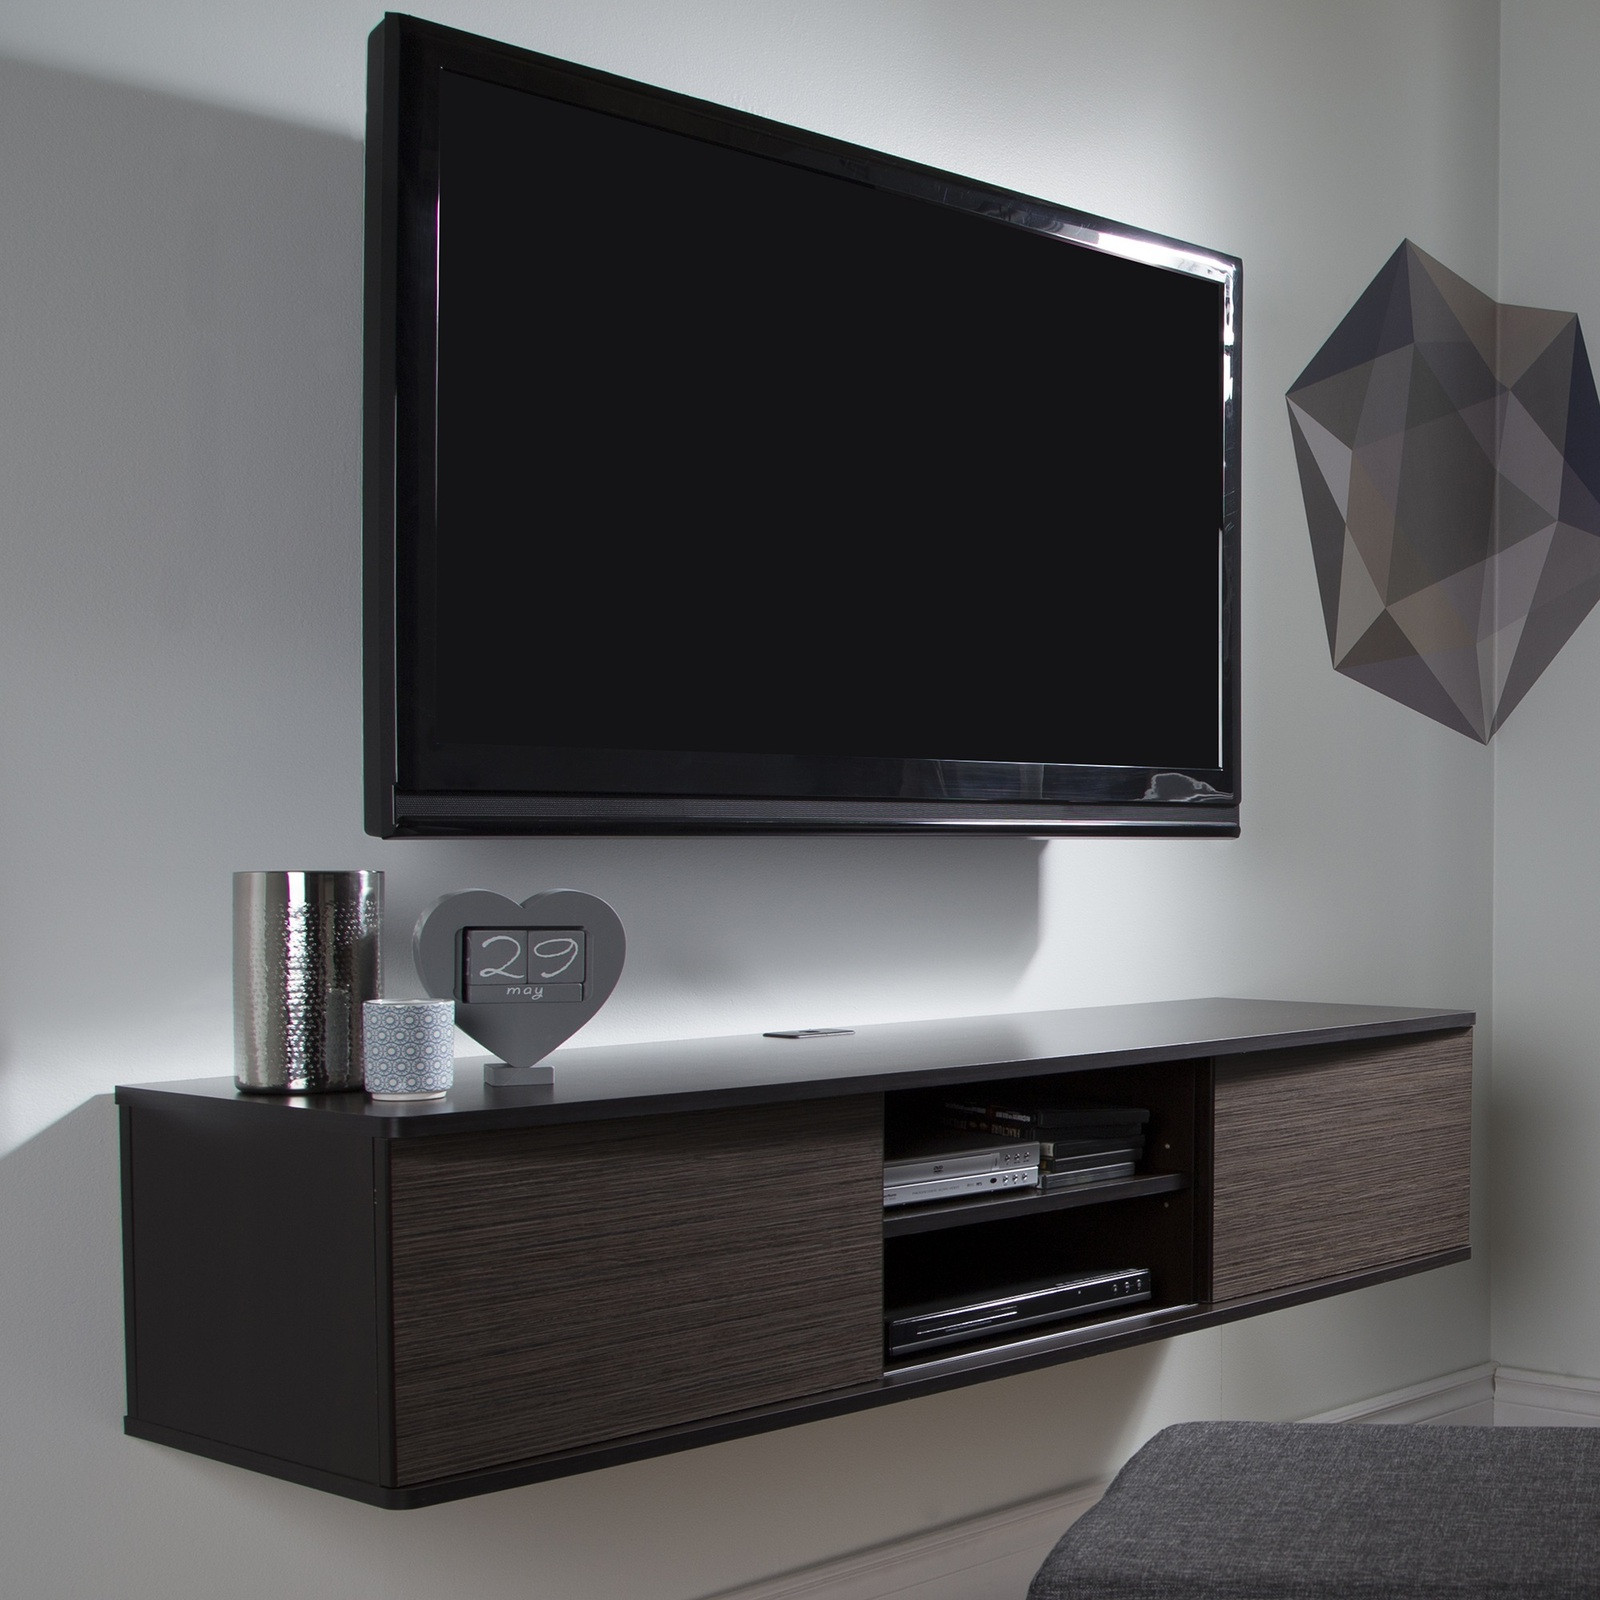 Best ideas about Wall Mount Tv Stand . Save or Pin Wall Mount TV Stand Media Console Center and similar items Now.